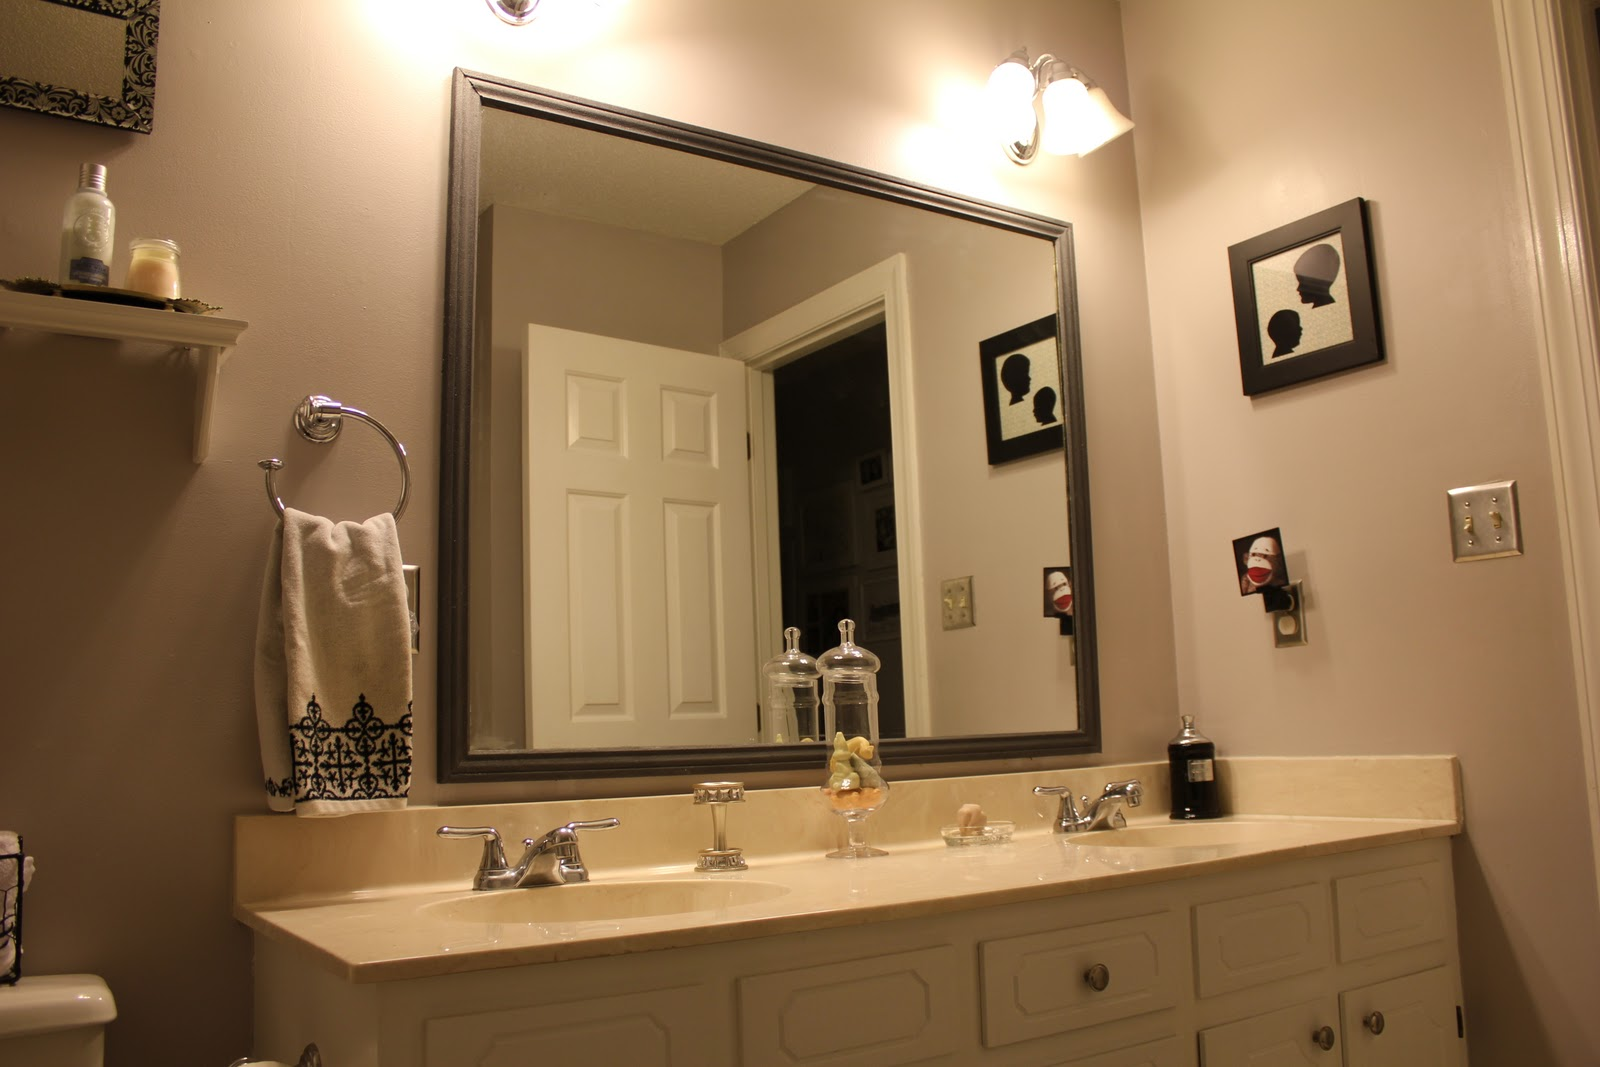 framing diy made of frame how inspirational framed bathroom to o mirror diystinctly mirrors a easy